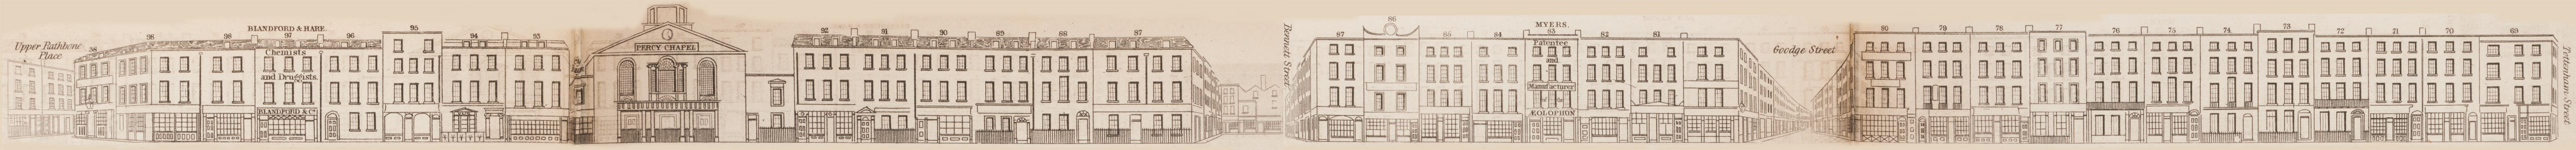 map - Tallis's London street views : No. 82. Charlotte Street, Fitzroy Square (west)